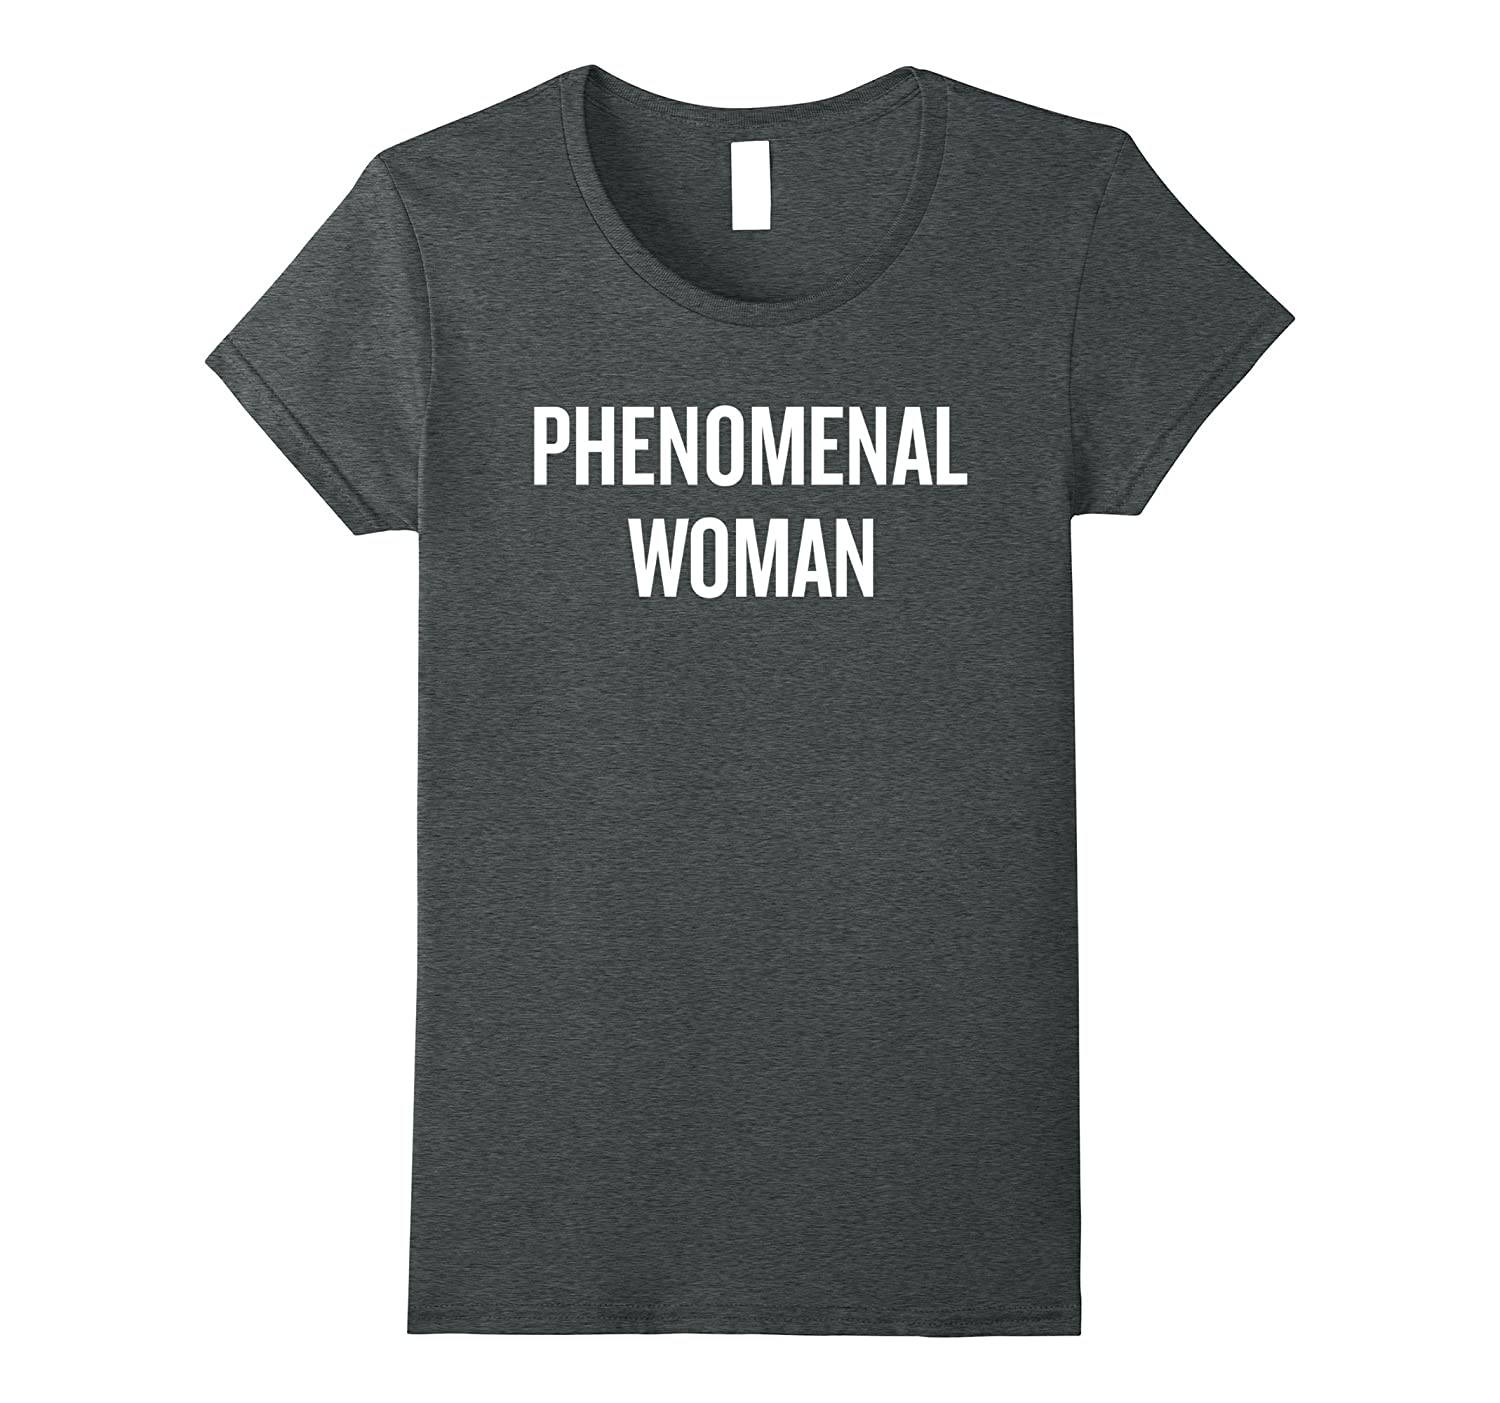 Phenomenal Woman T-shirt Amazing Mother Shirt